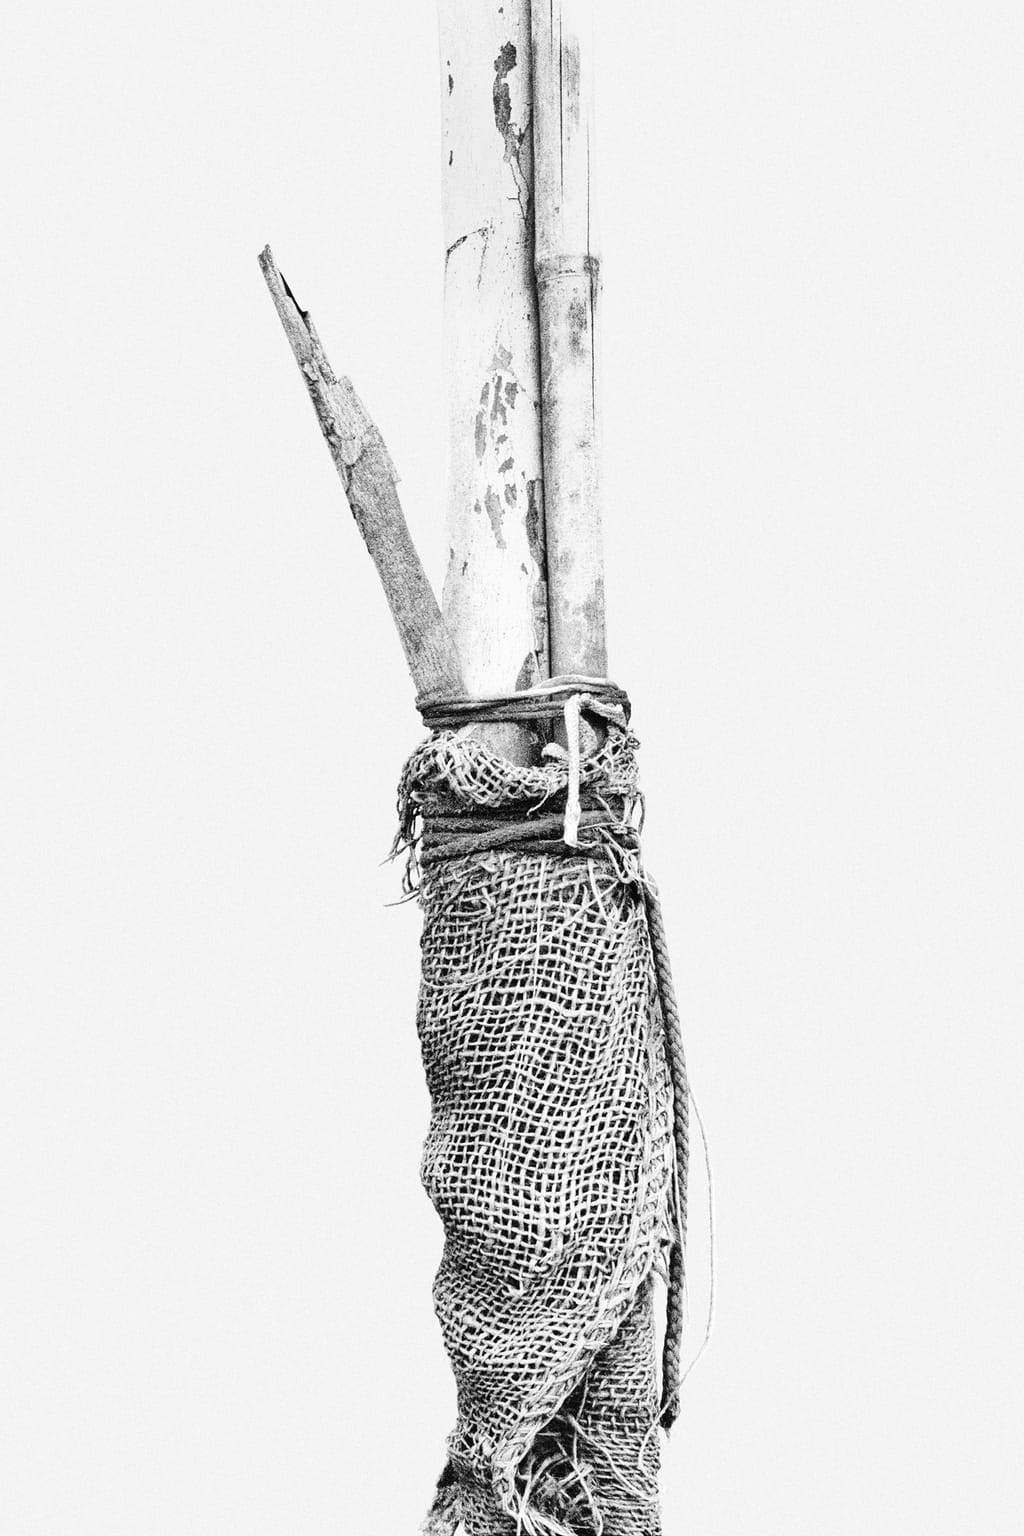 Black and white photo of a tree tied to a wooden branch, supporting it and protected by a large piece of rough fabric; against a white background.